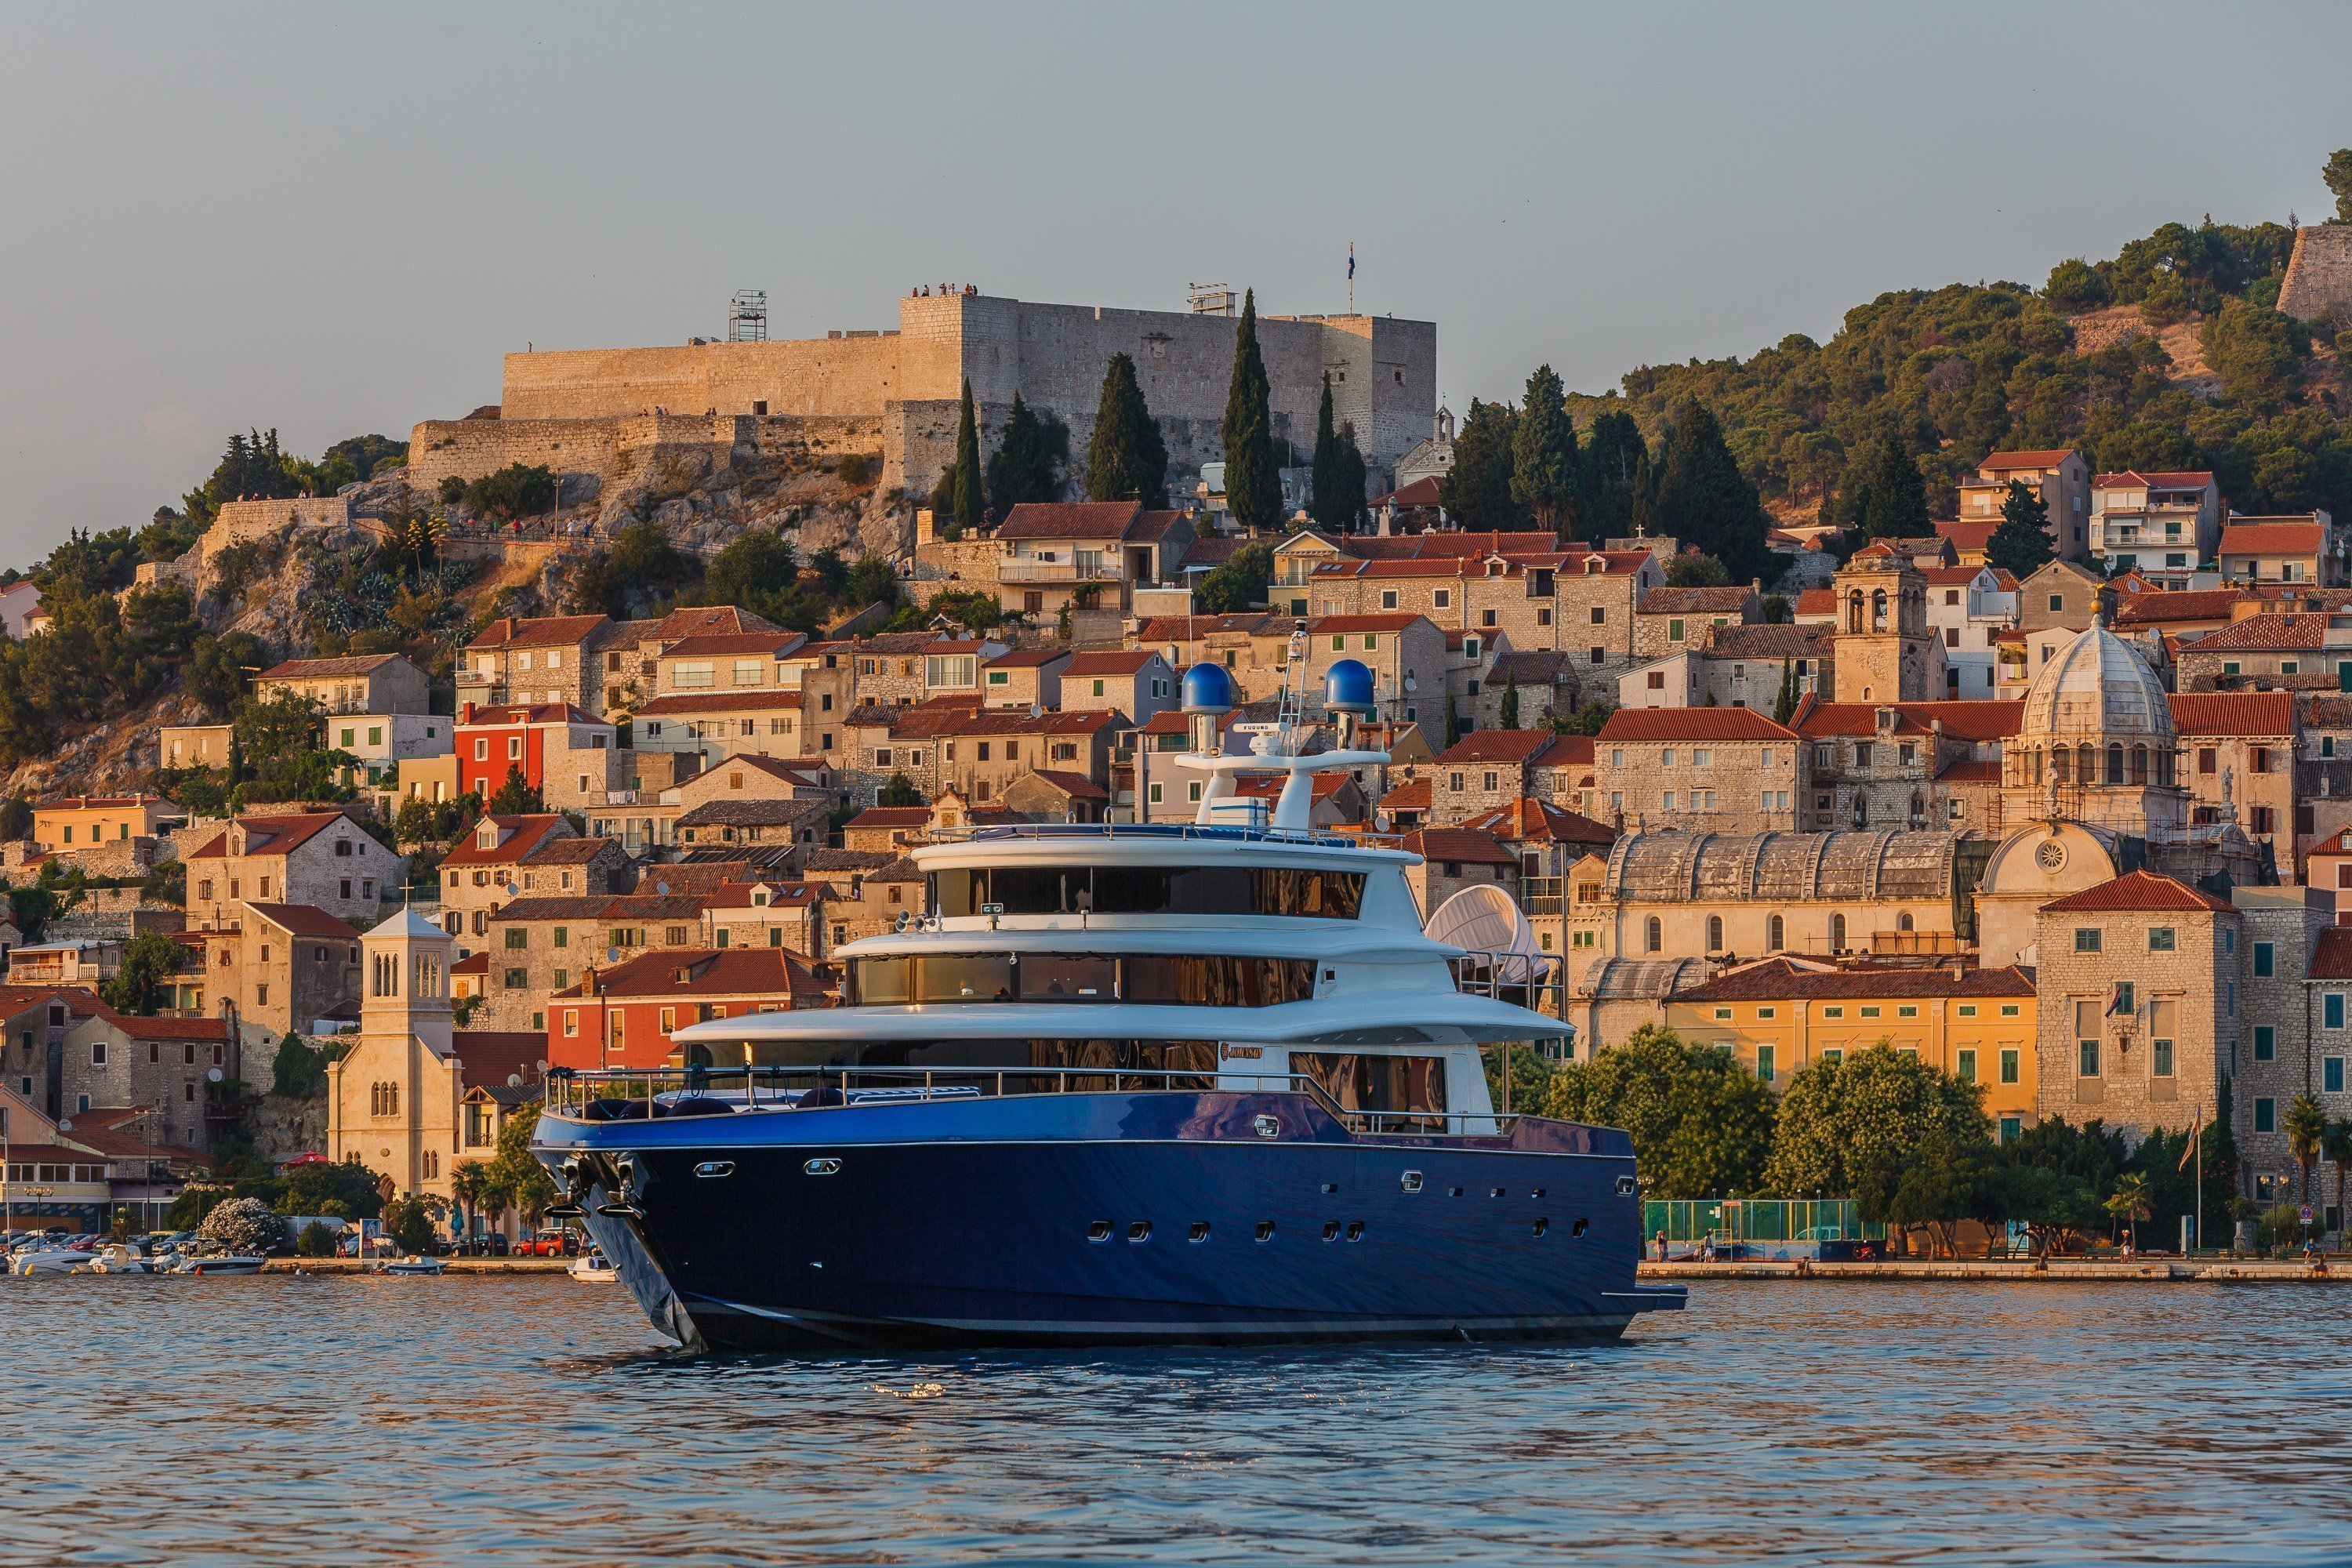 yacht with blue hull in front of Croatian hillside town